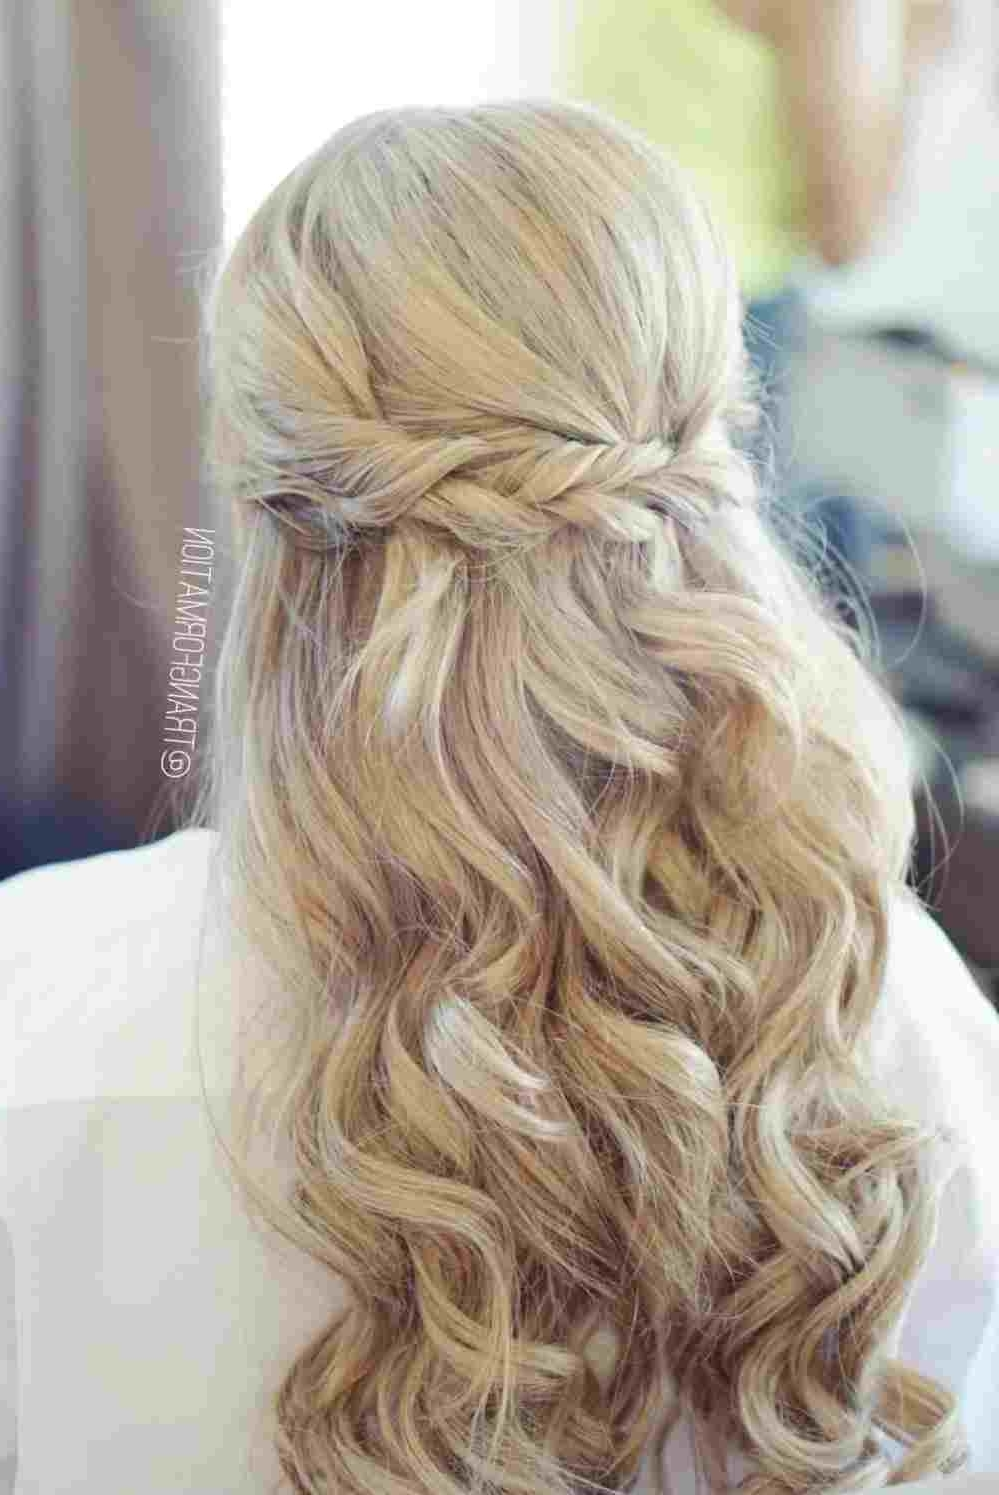 Braid Diy Bridesmaid Hairstyles Half Up Half Down With Braids Intended For Most Current Ash Blonde Half Up Hairstyles (View 8 of 20)